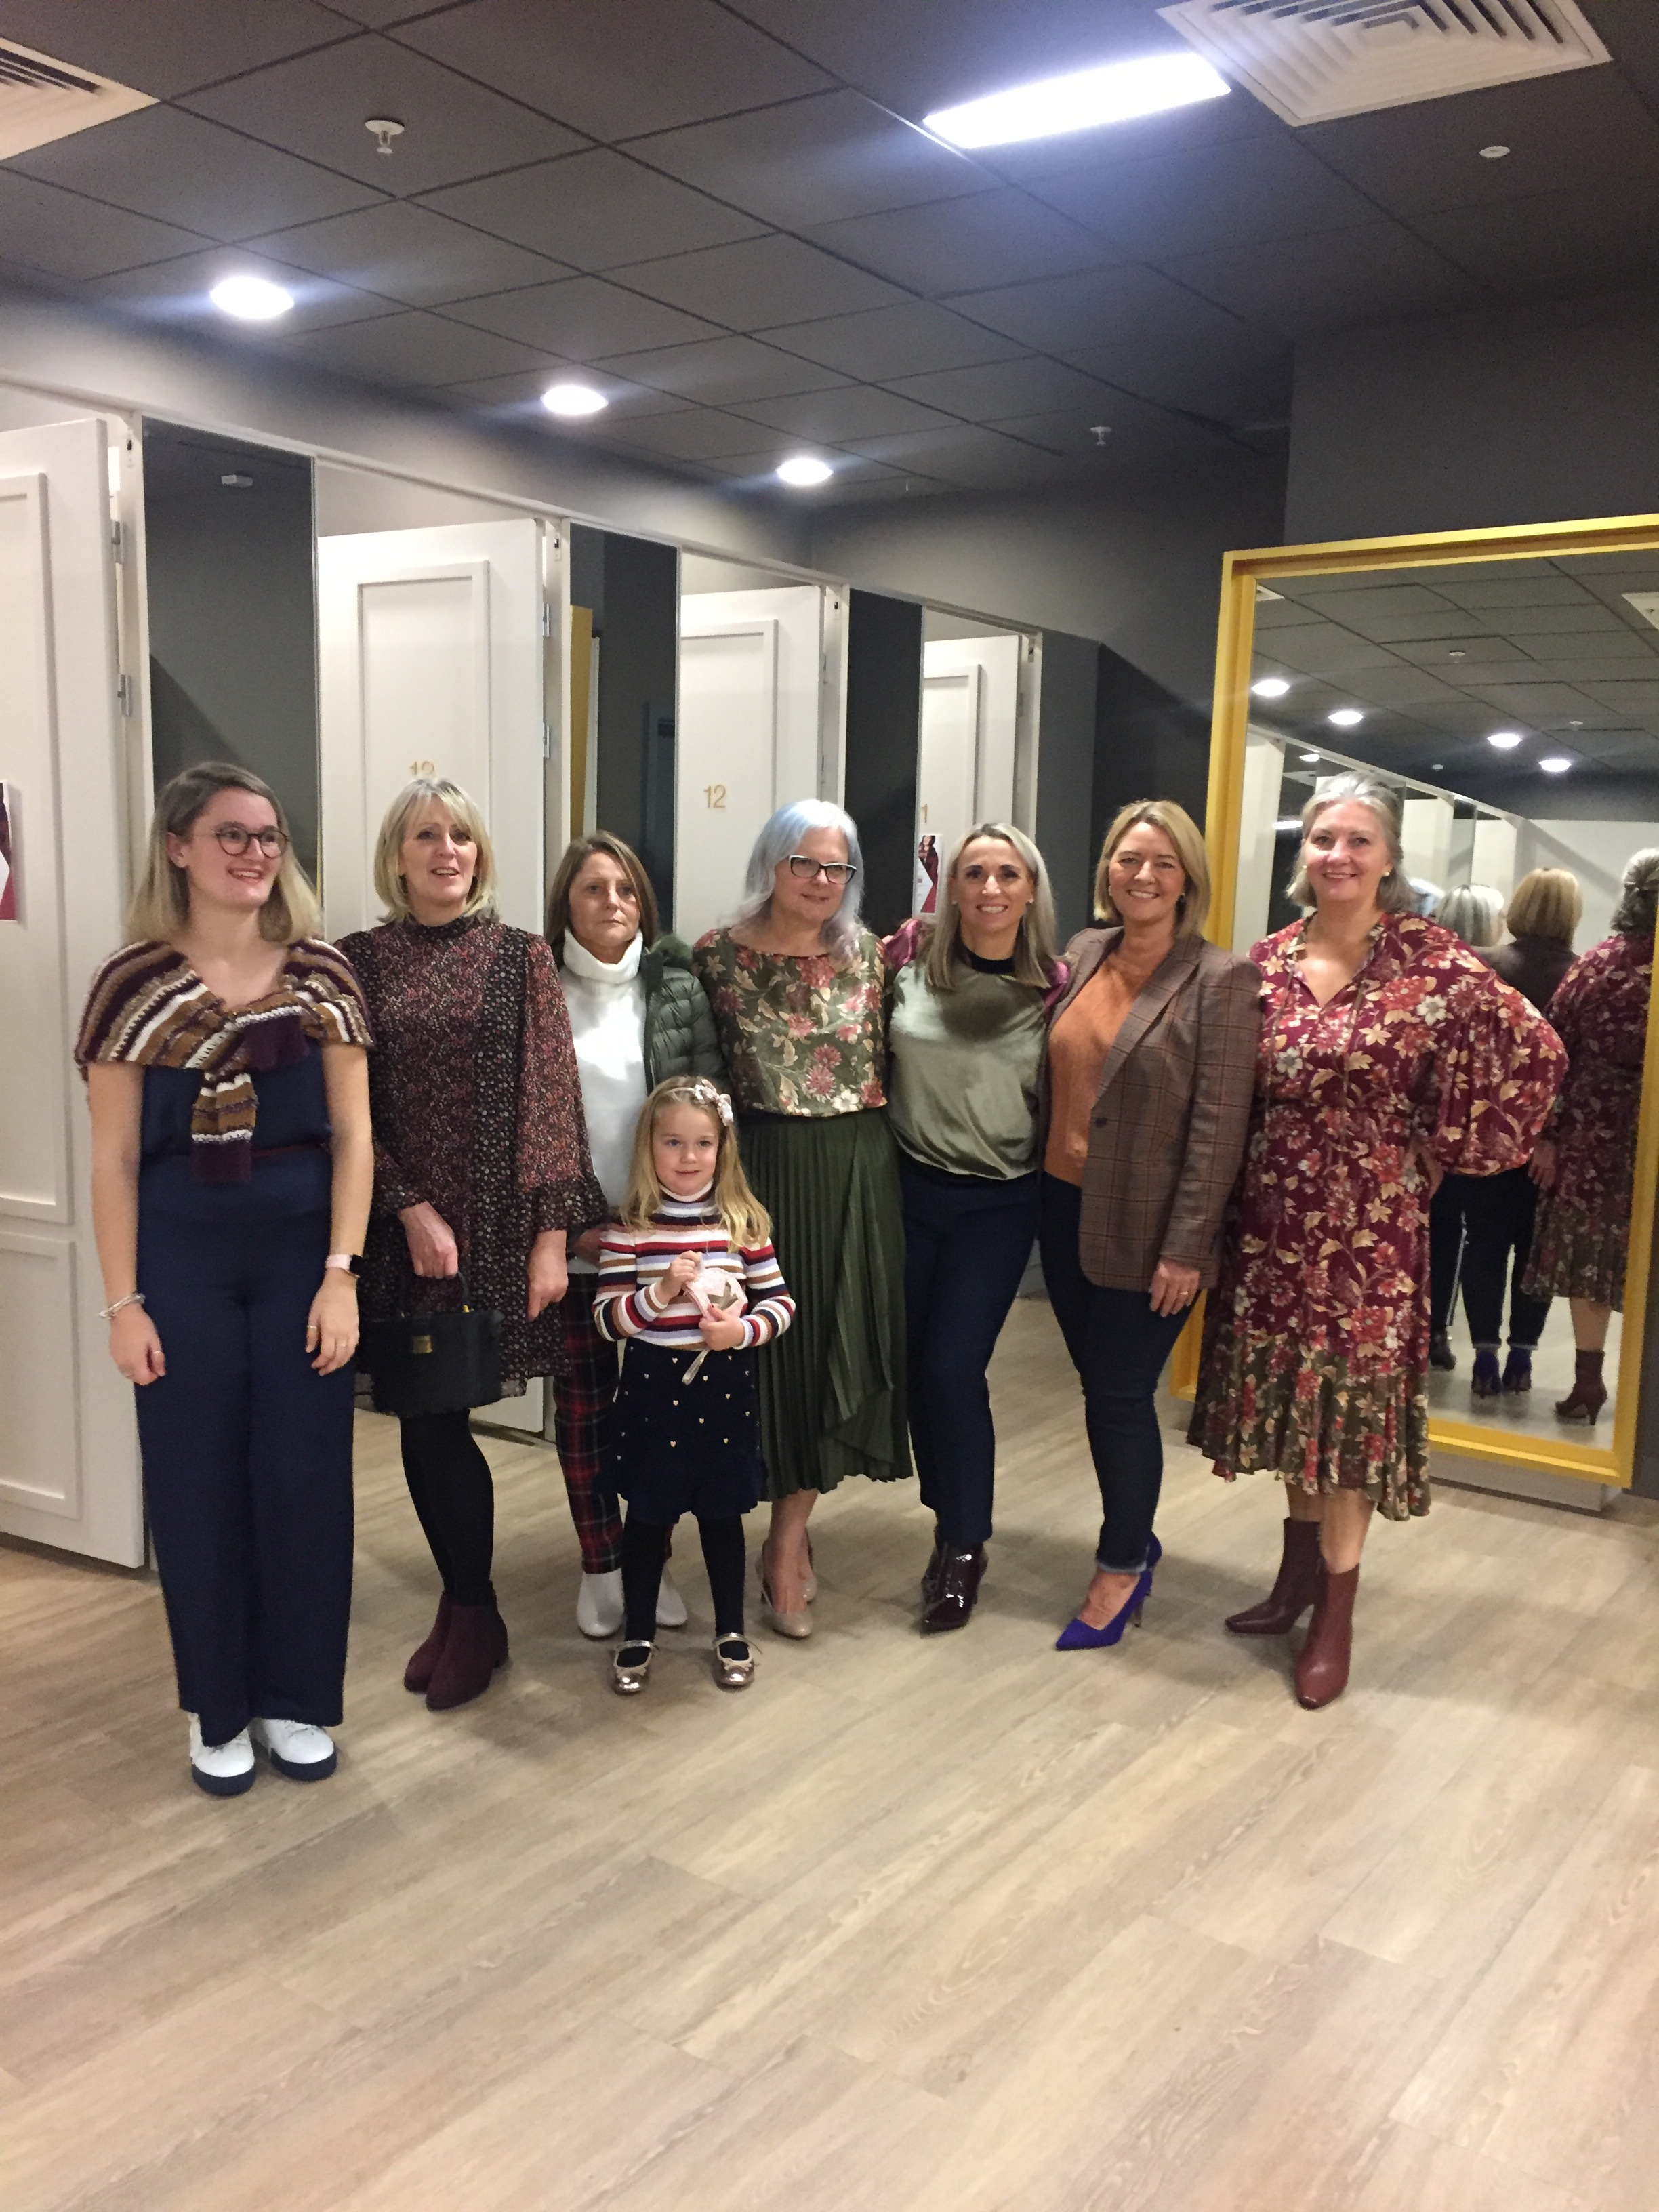 The ladies looking lovely and stylish in their brands at M&S